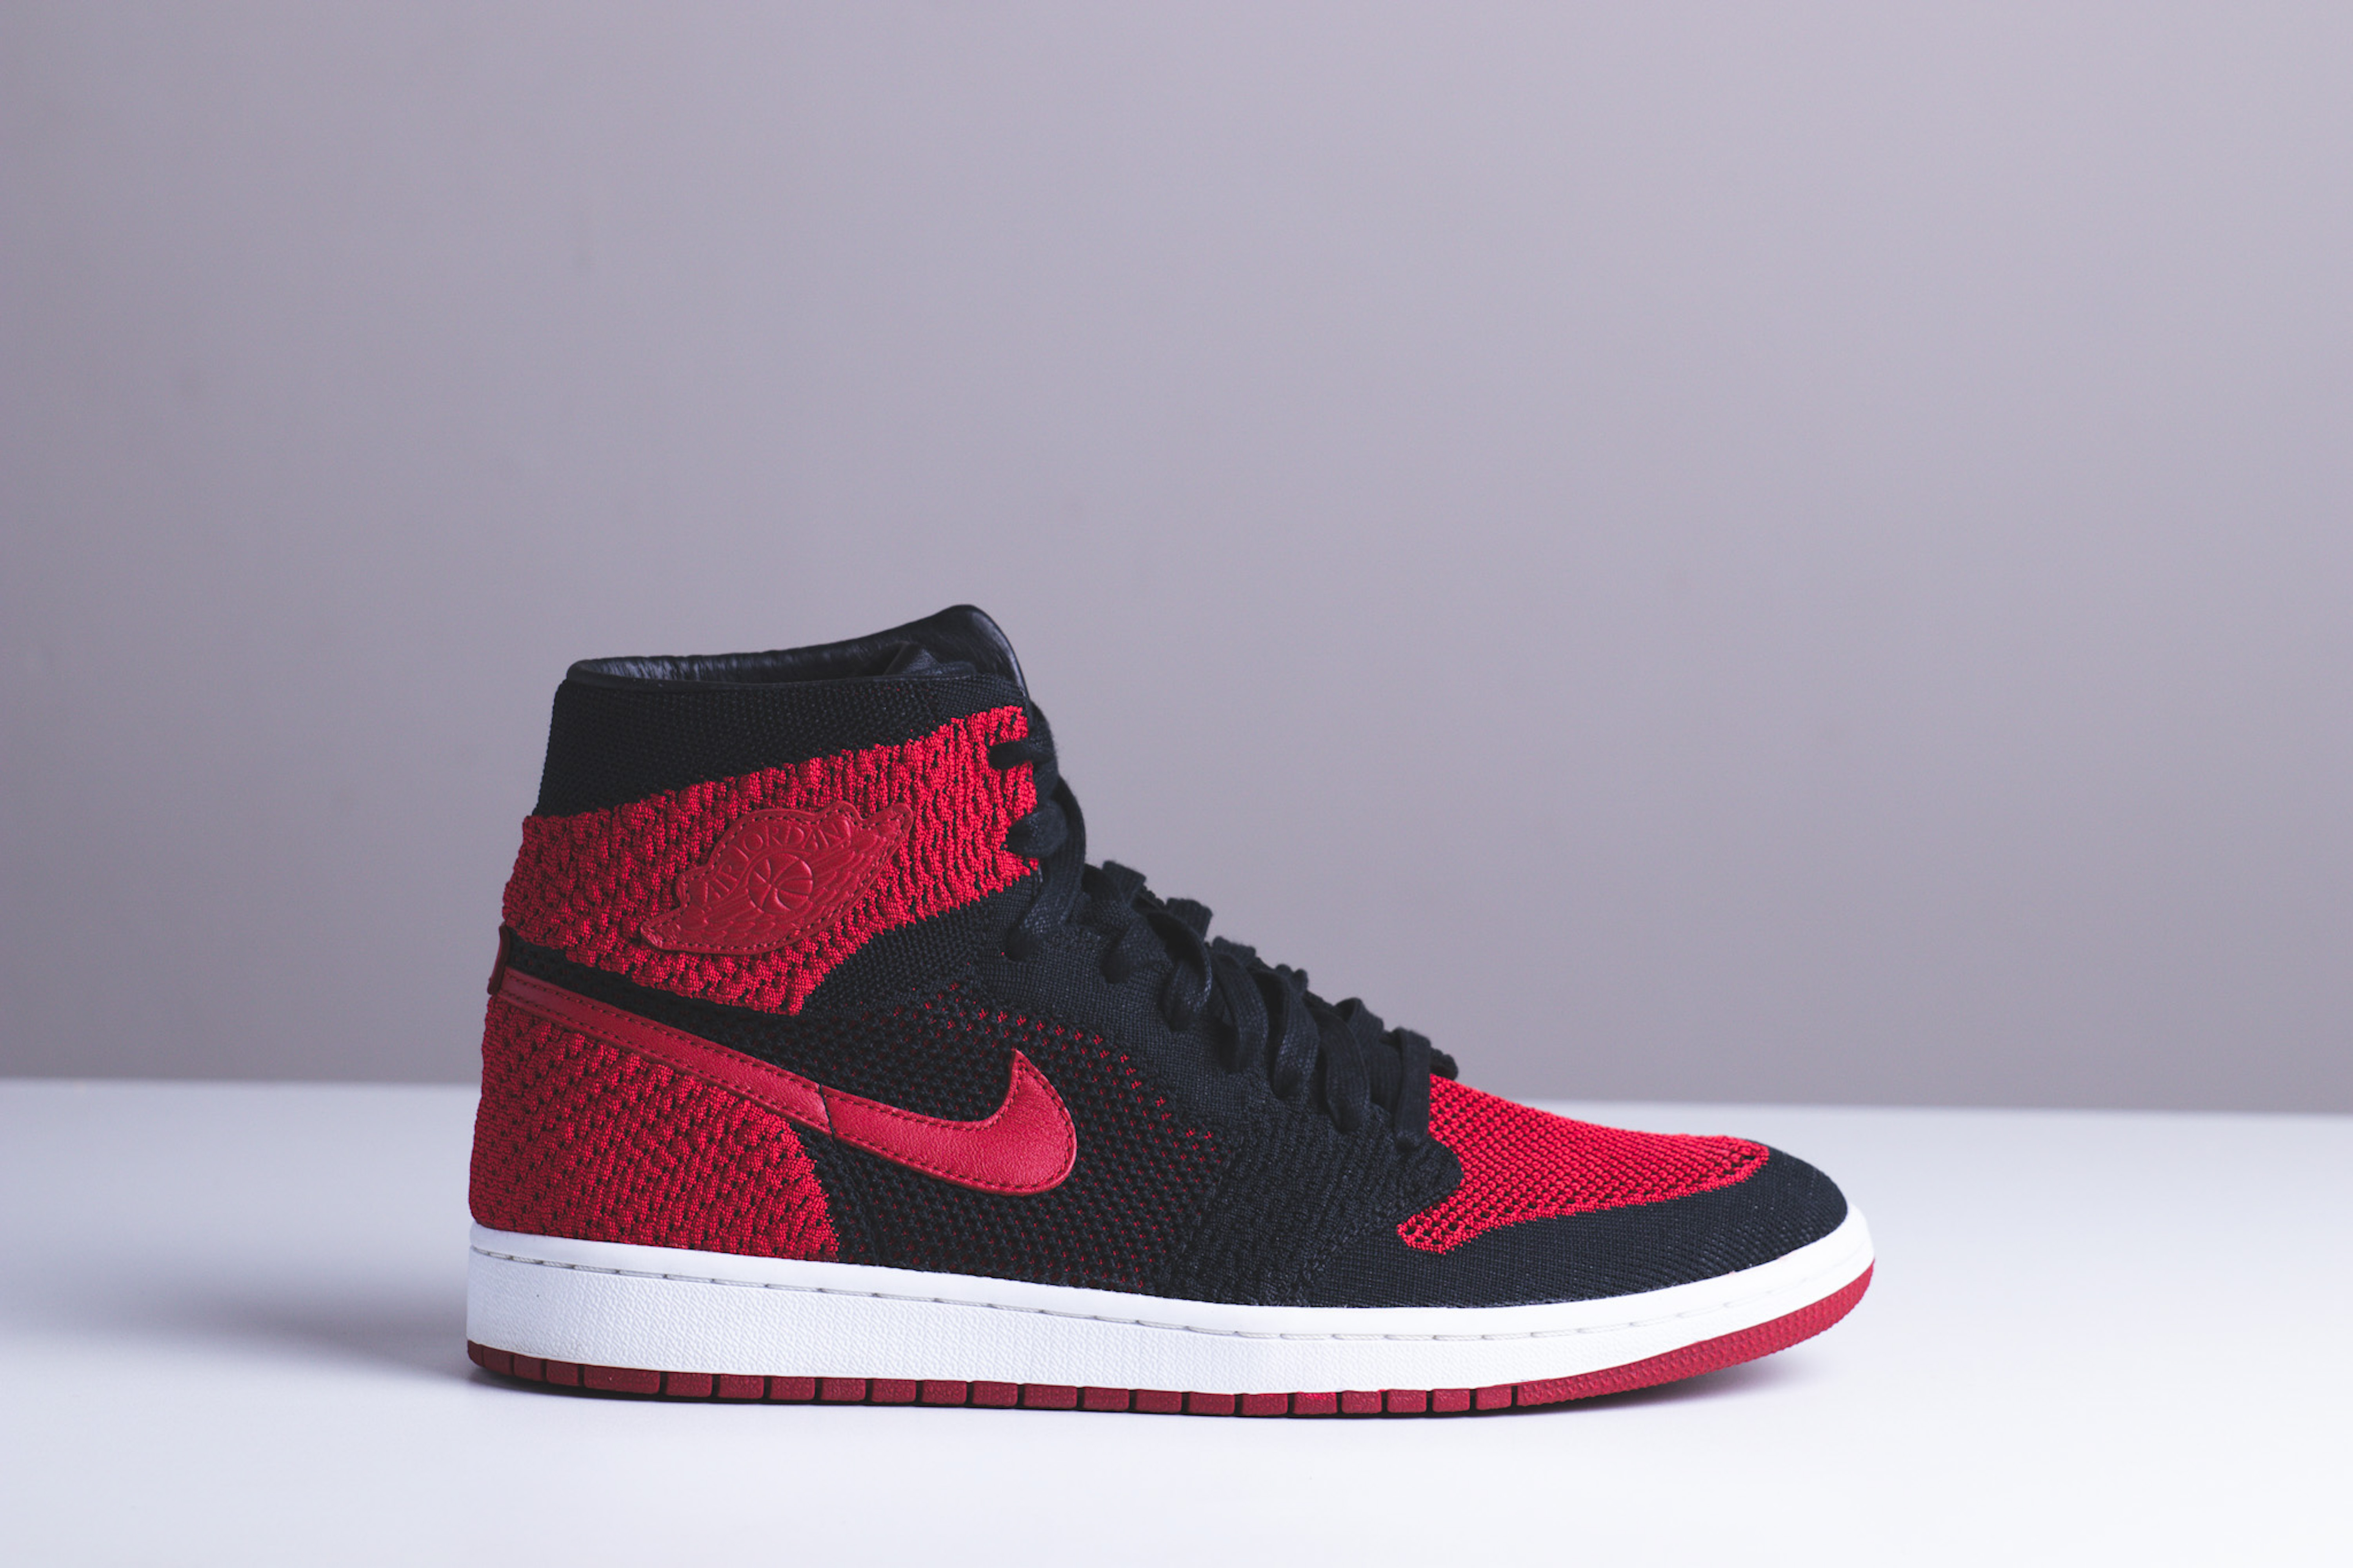 red high top nikes